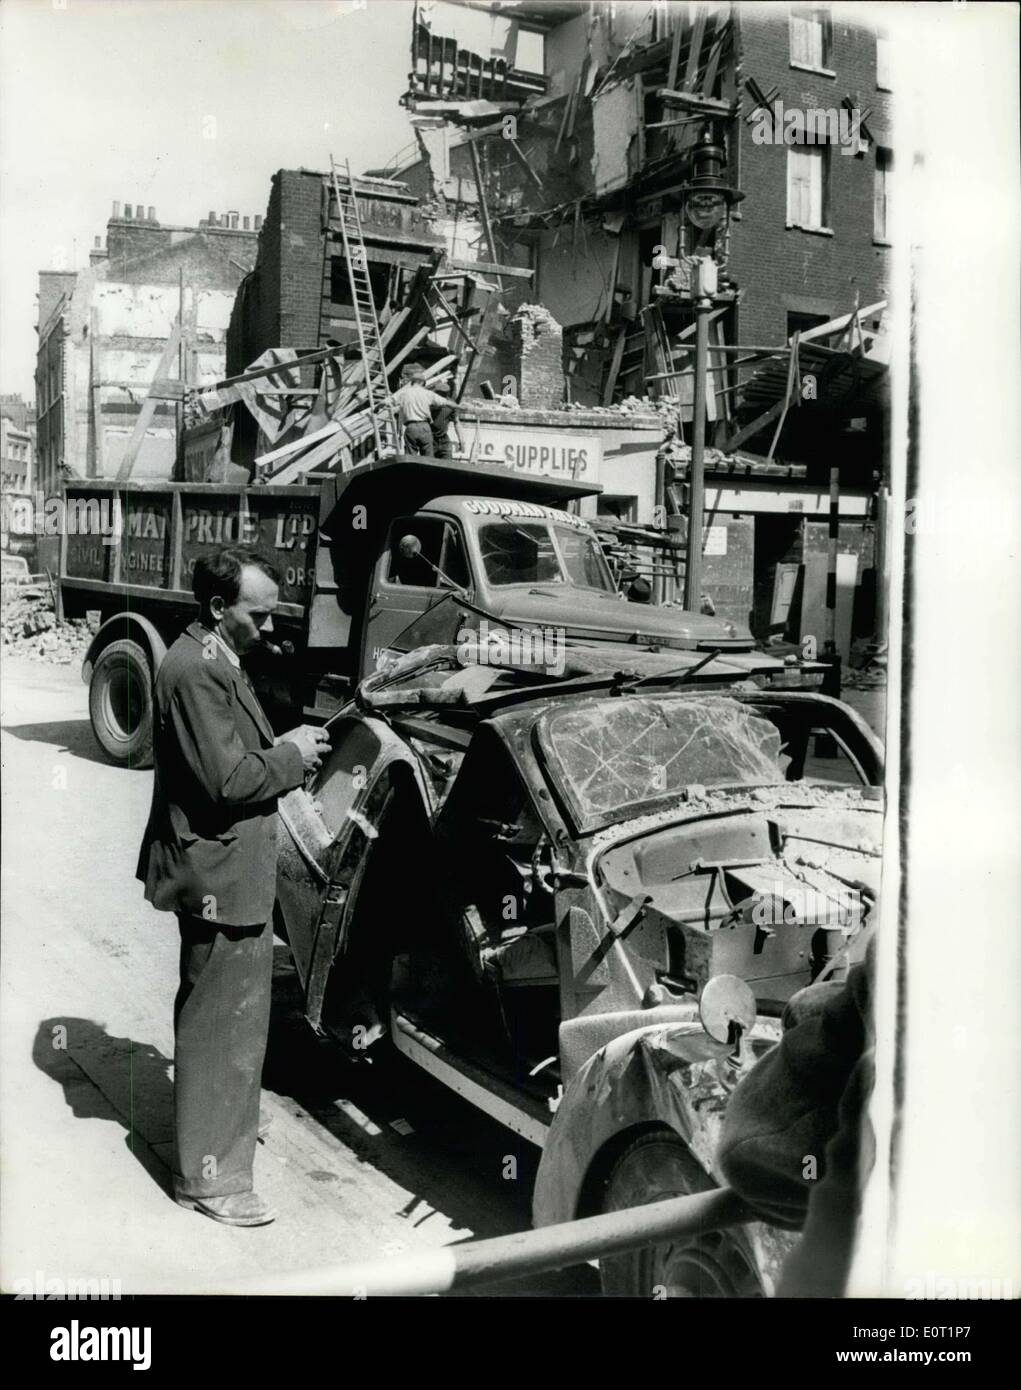 Jul. 06, 1960 - Shop Collapses And Wrecks Pre-War Car... Mr. Hugh Walters of Norbury a school-teacher left his 1938 Ford '8' car in Lisle St., Soho, yesterday - while he went to keep an appointment at a Soho hospital.. While he was away building alongside that was under process of demolition - collapsed of its own volition fifty tons of debris crashed down on the car - turning it into a complete wreck.. Luckily no one was hurt. Photo Shows: Mr Hugh Walters looks at the wreckage of his car - after the crash of the building - yesterday. - Stock Image